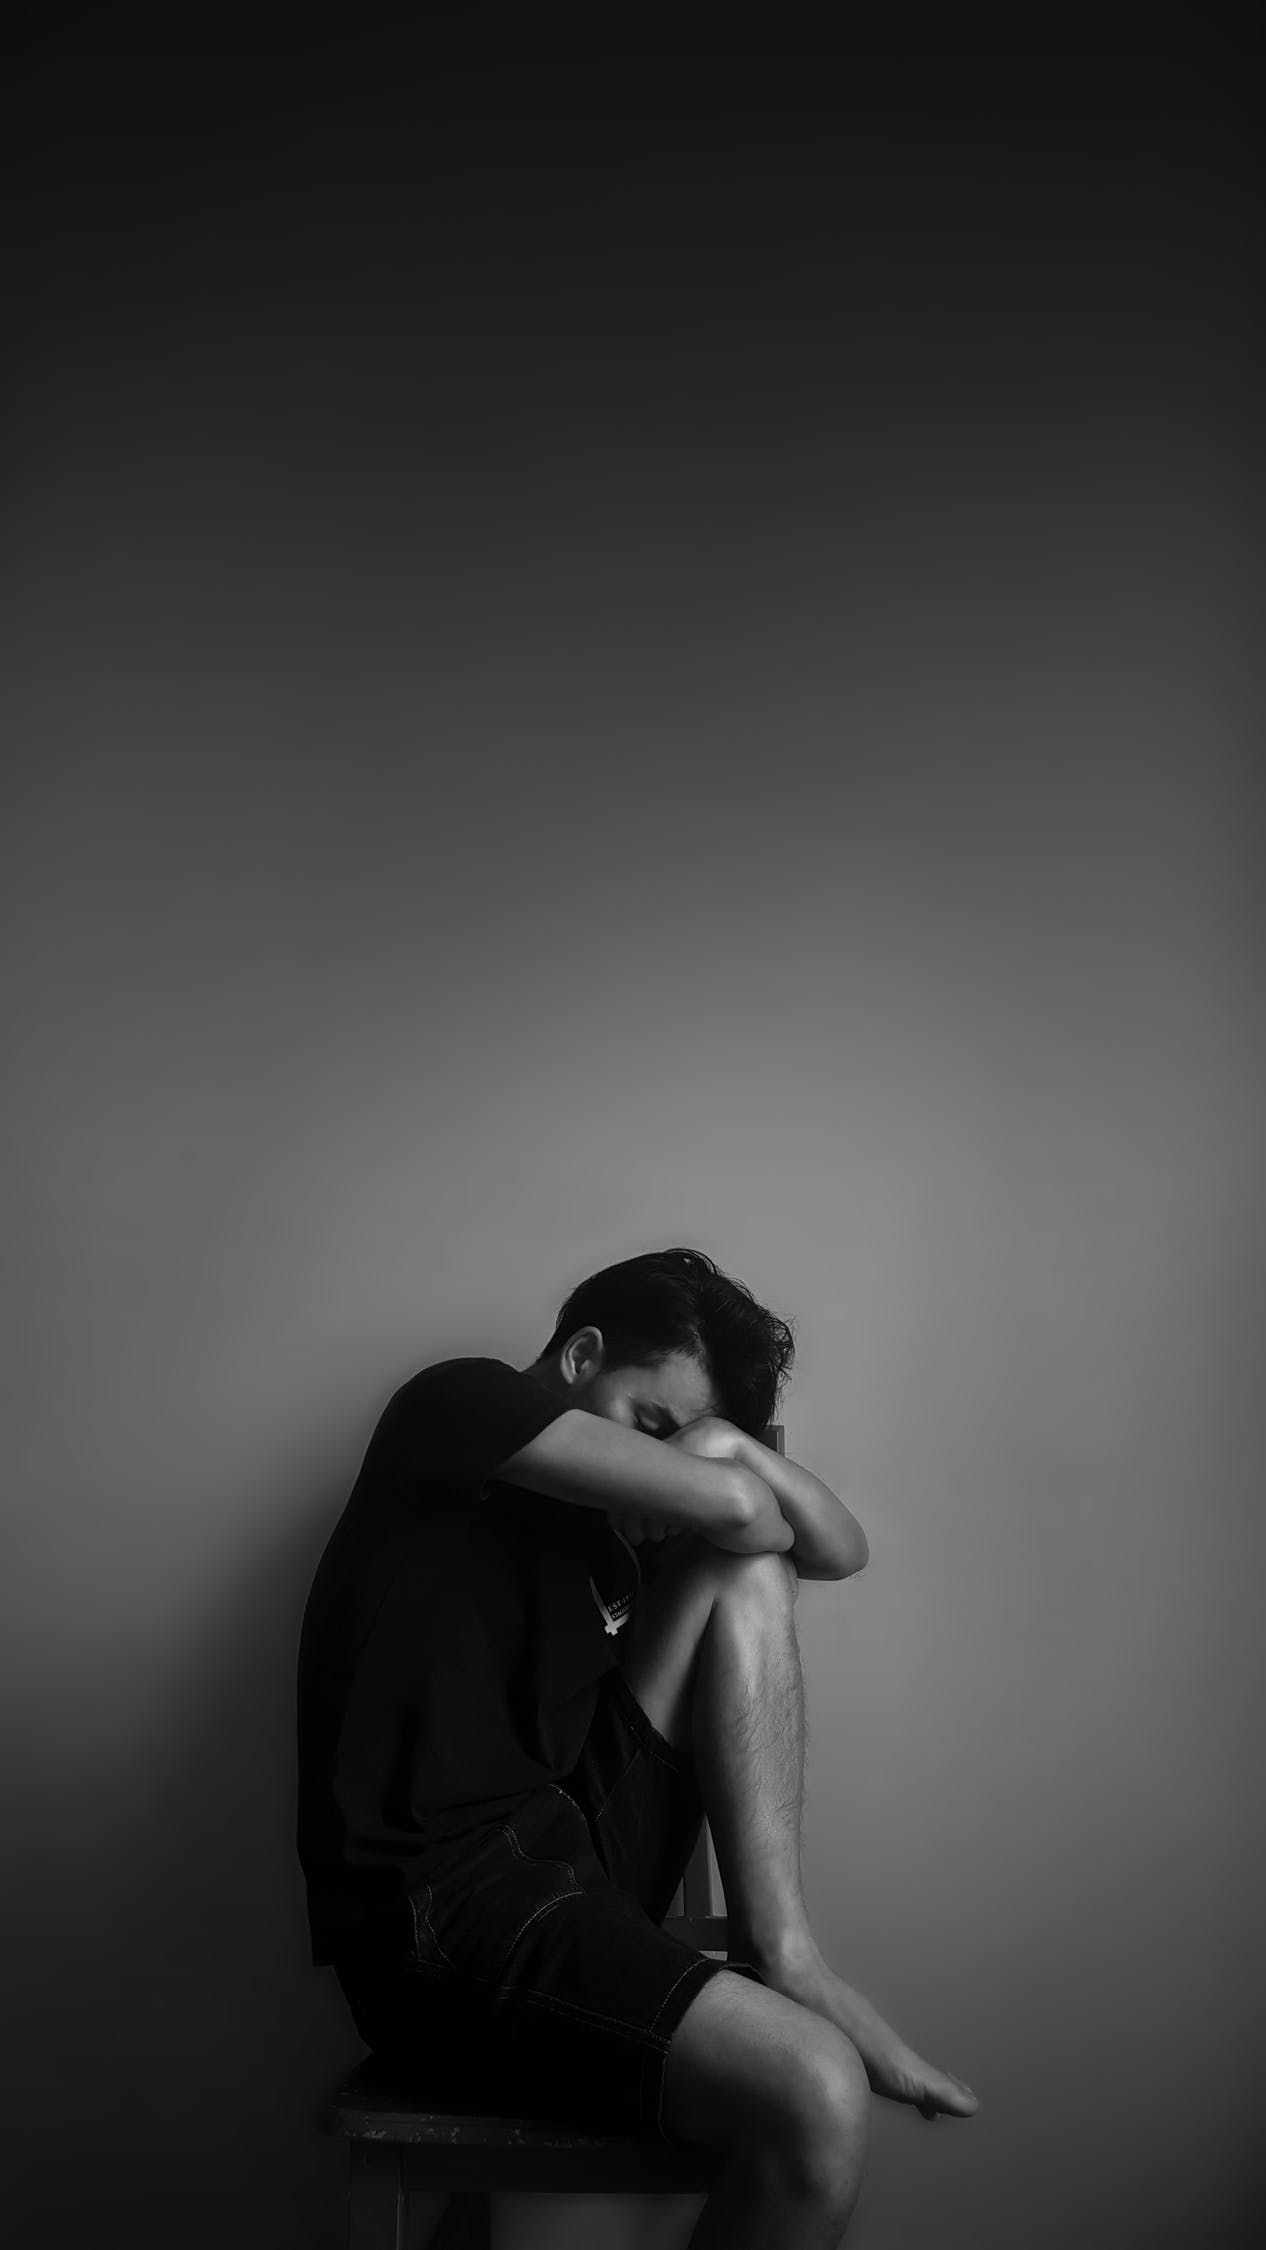 Grayscale Photography of Man Sitting Beside Wall